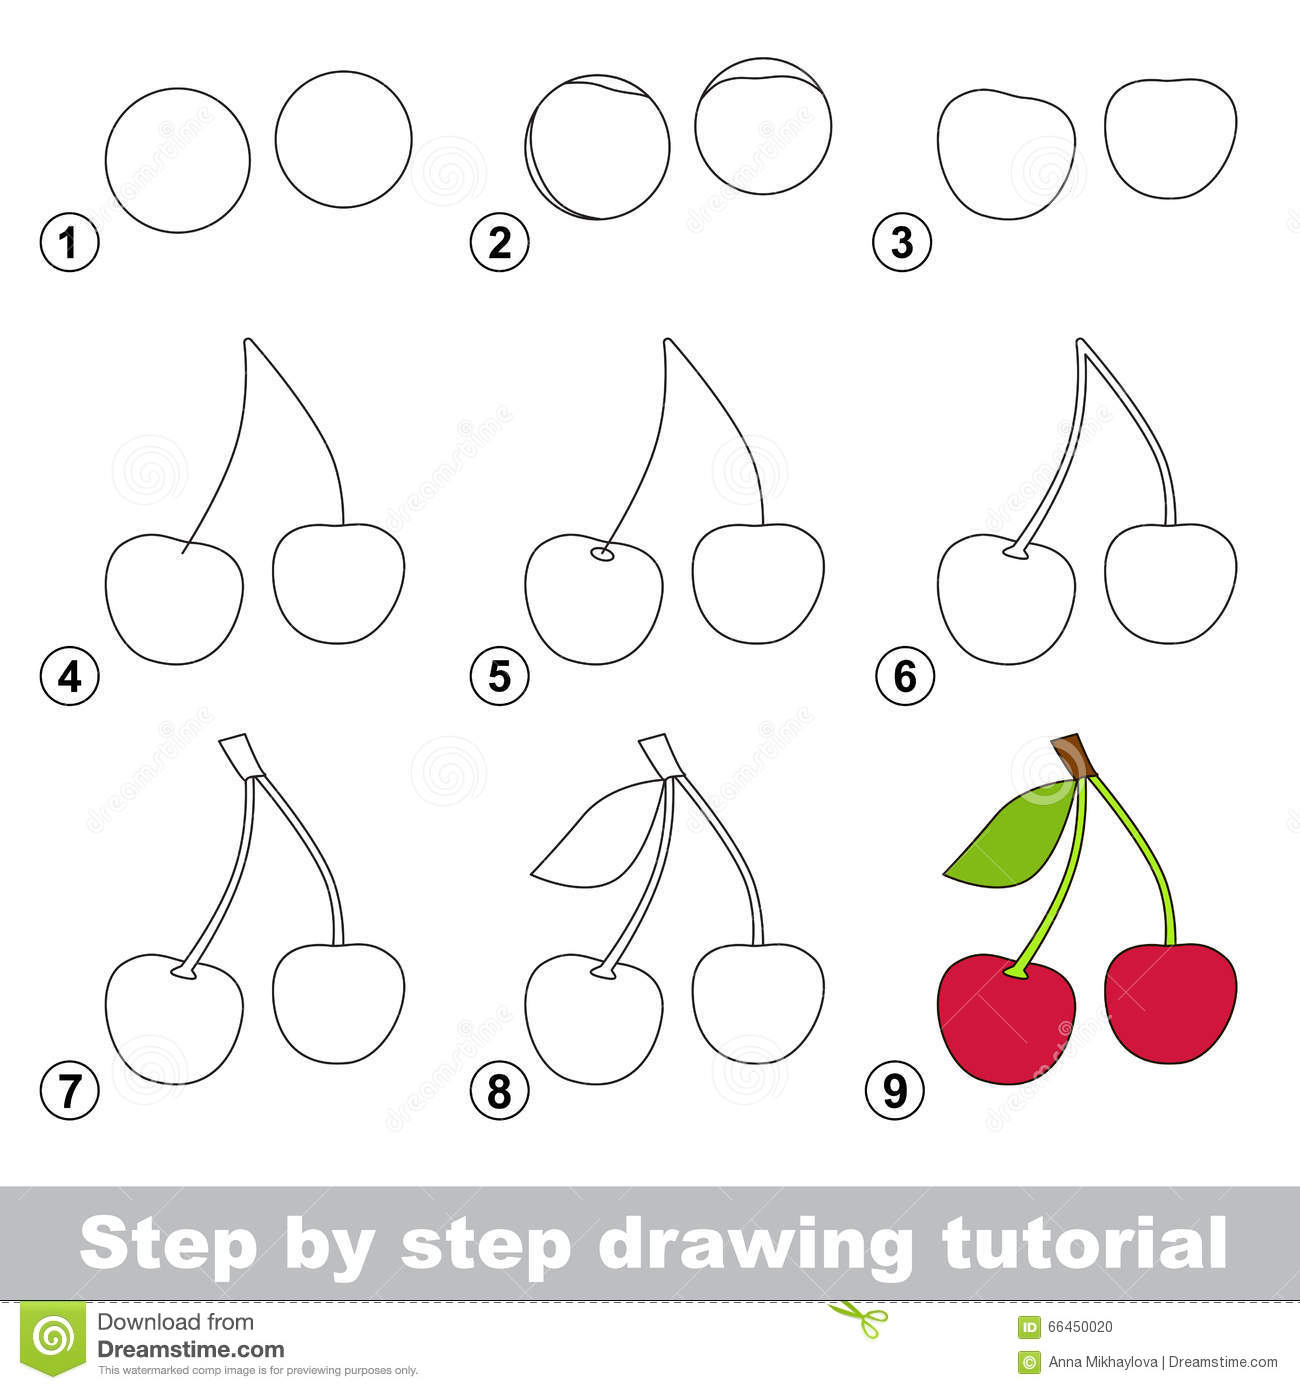 Tutorial Del Dibujo Cómo Dibujar Una Cereza Ilustración ... - photo#18